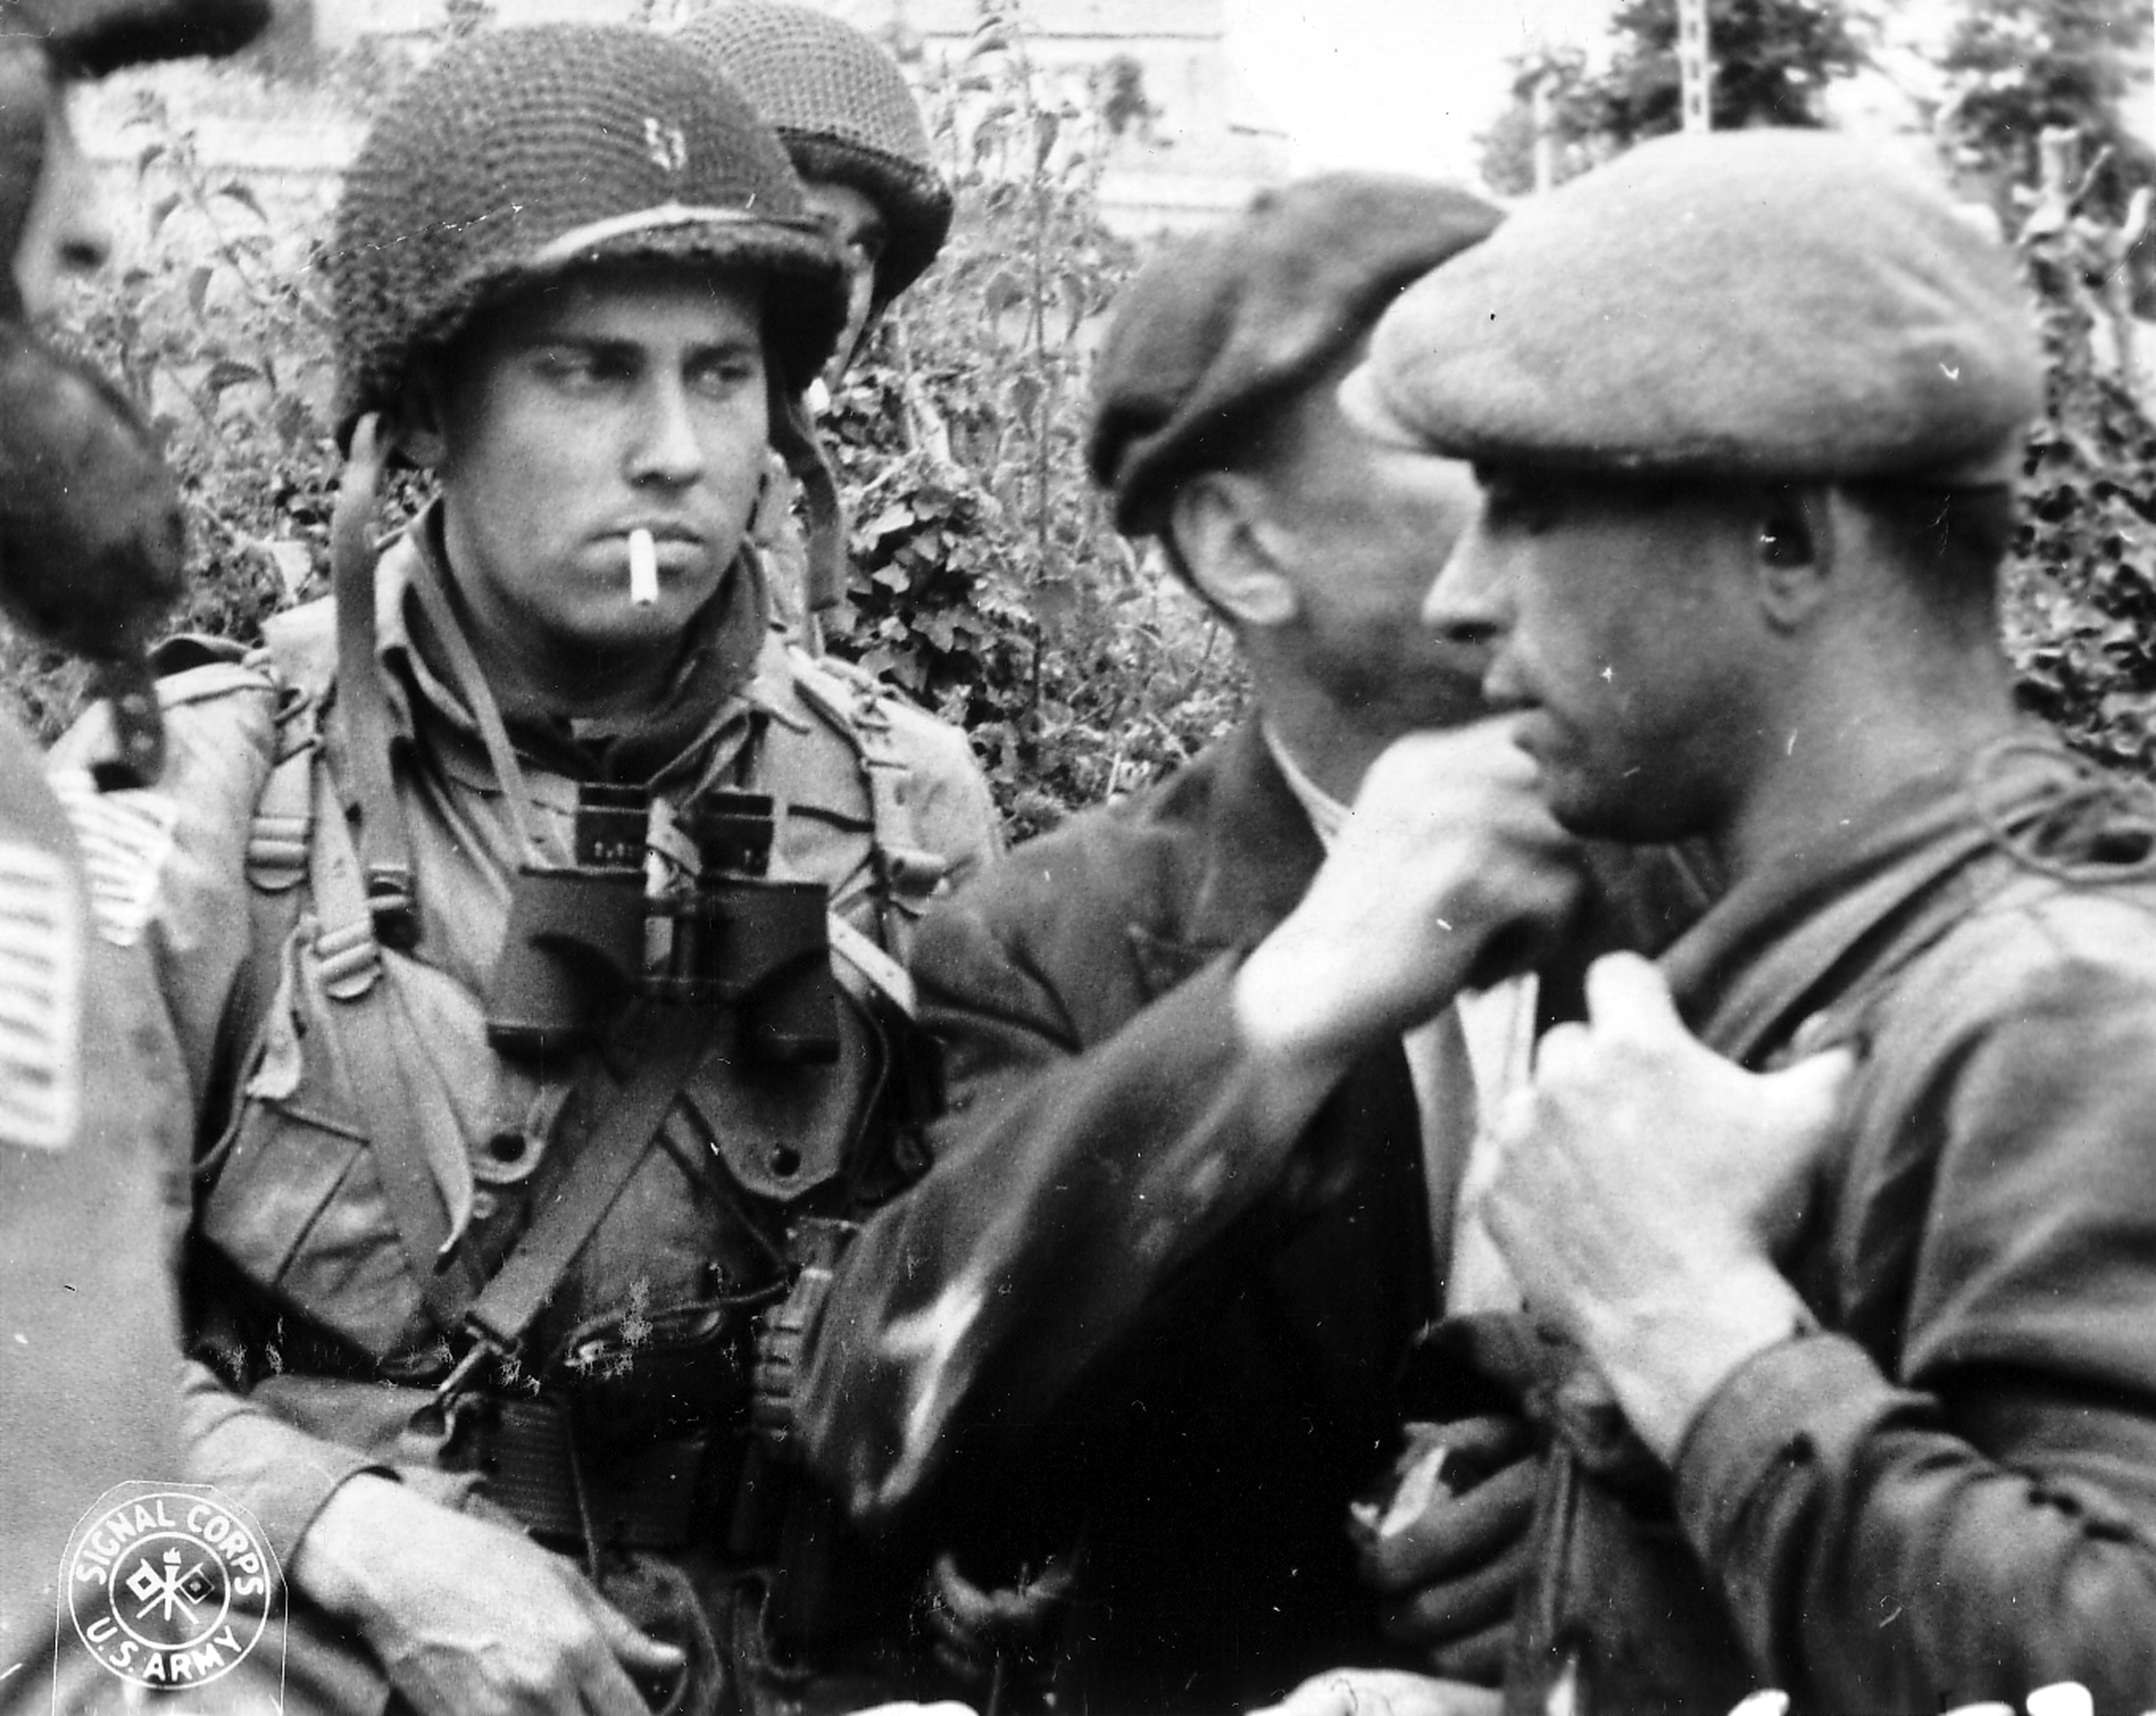 French resistance fighters American paratroopers